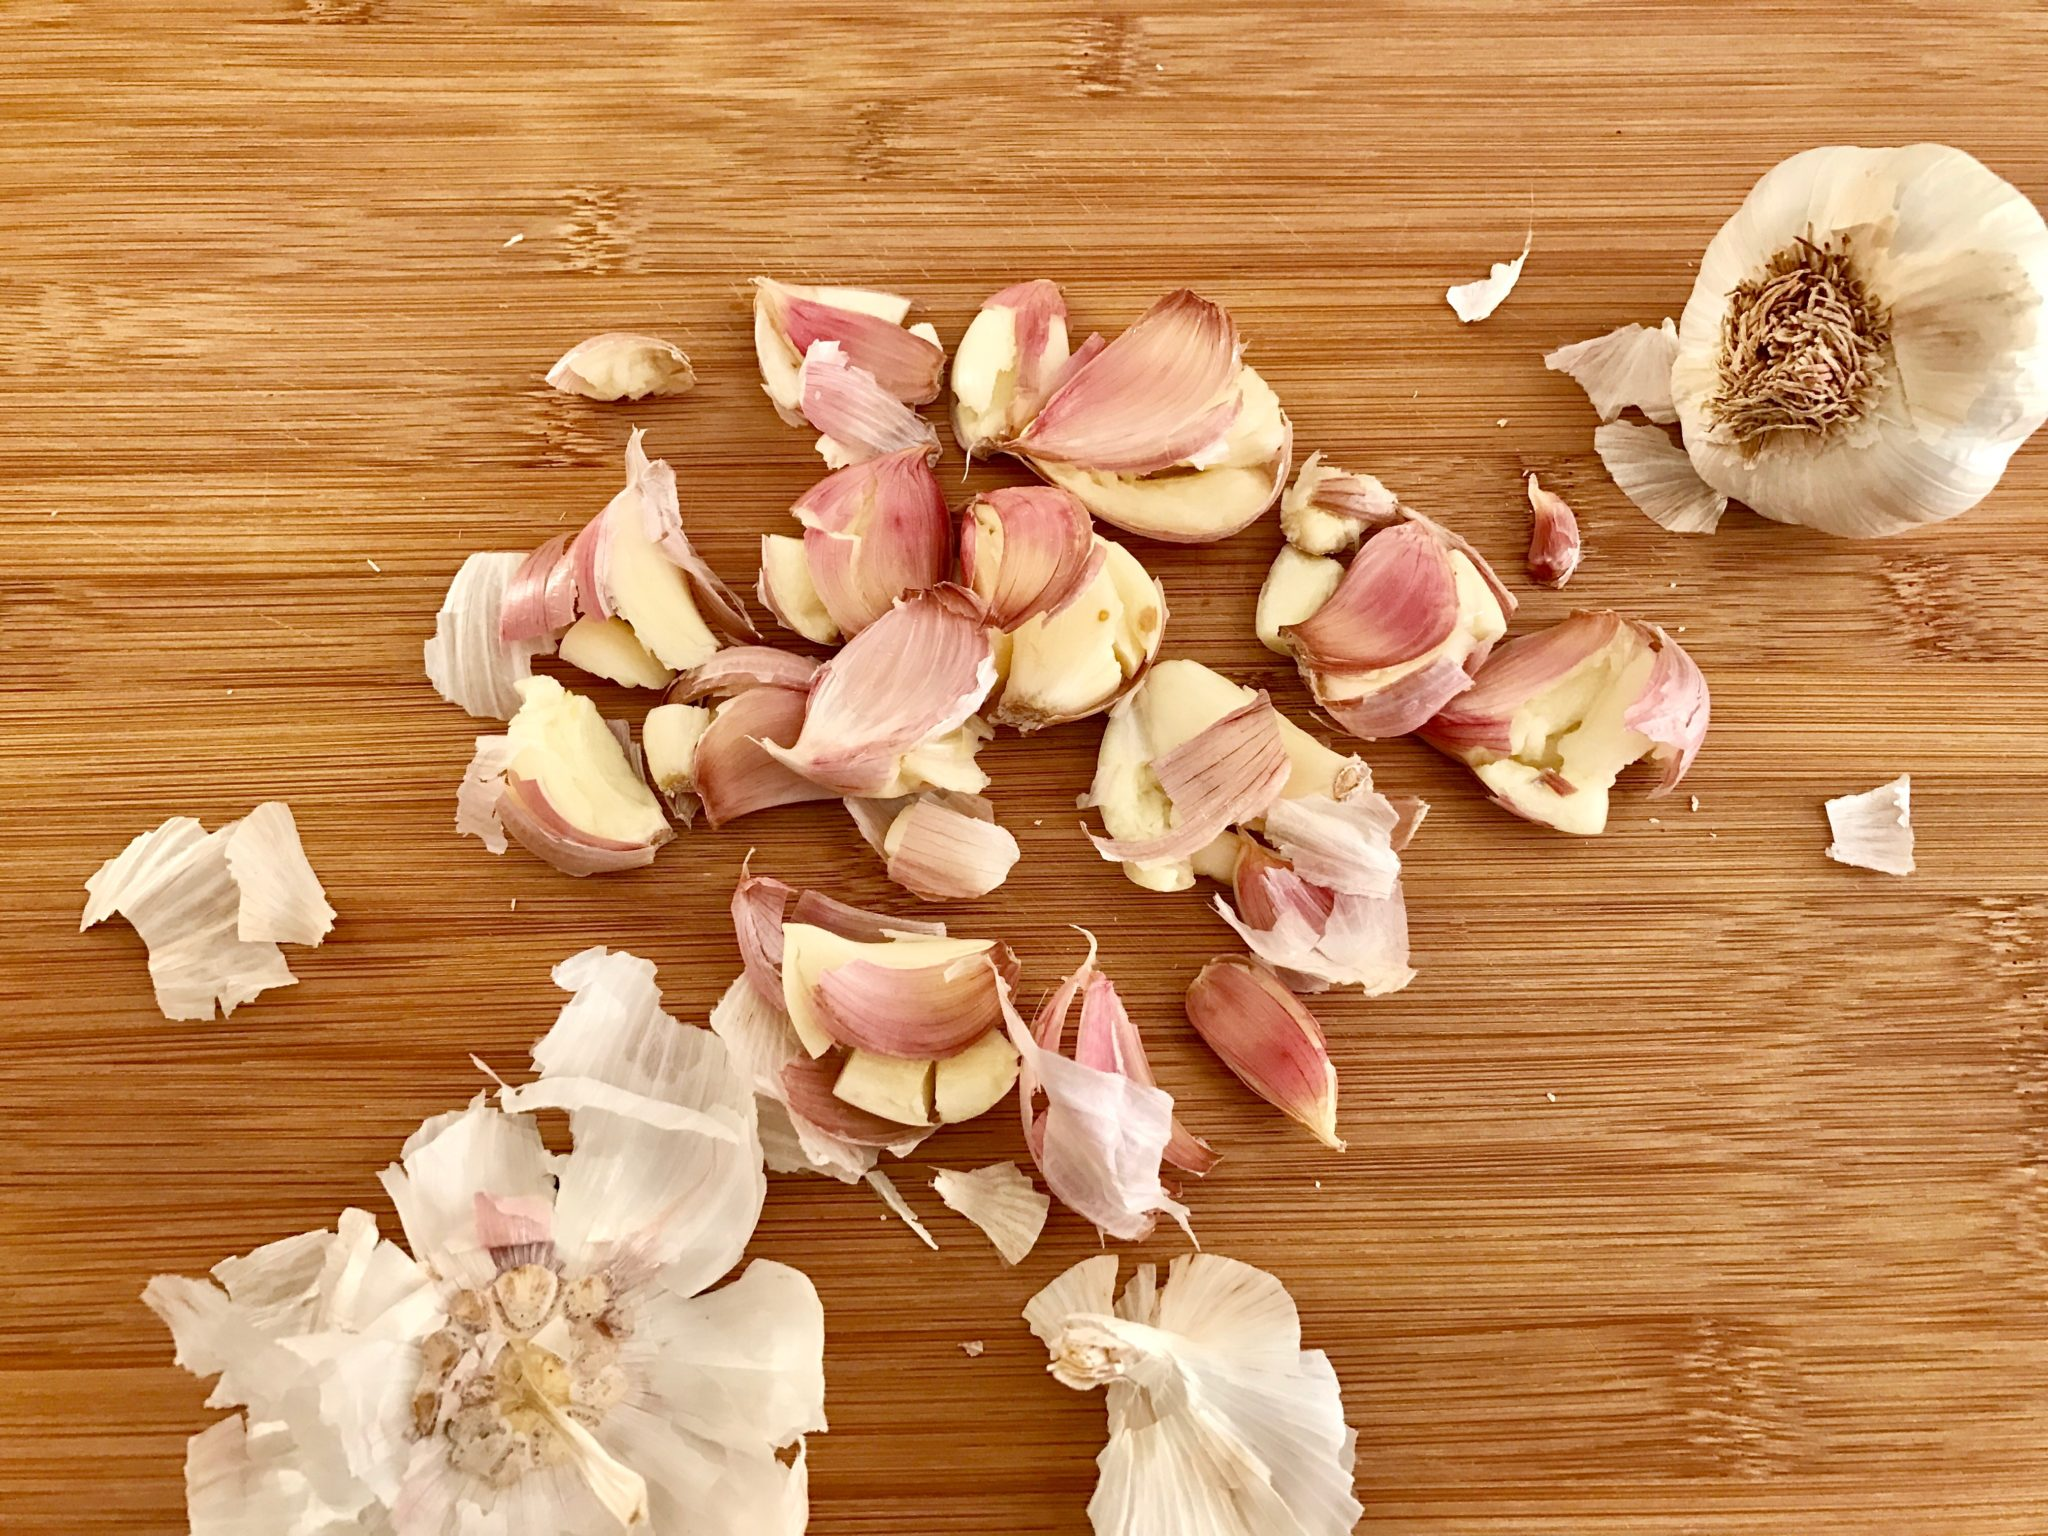 Smashed garlic is easier to peel, and you can get a full flavor from it too!